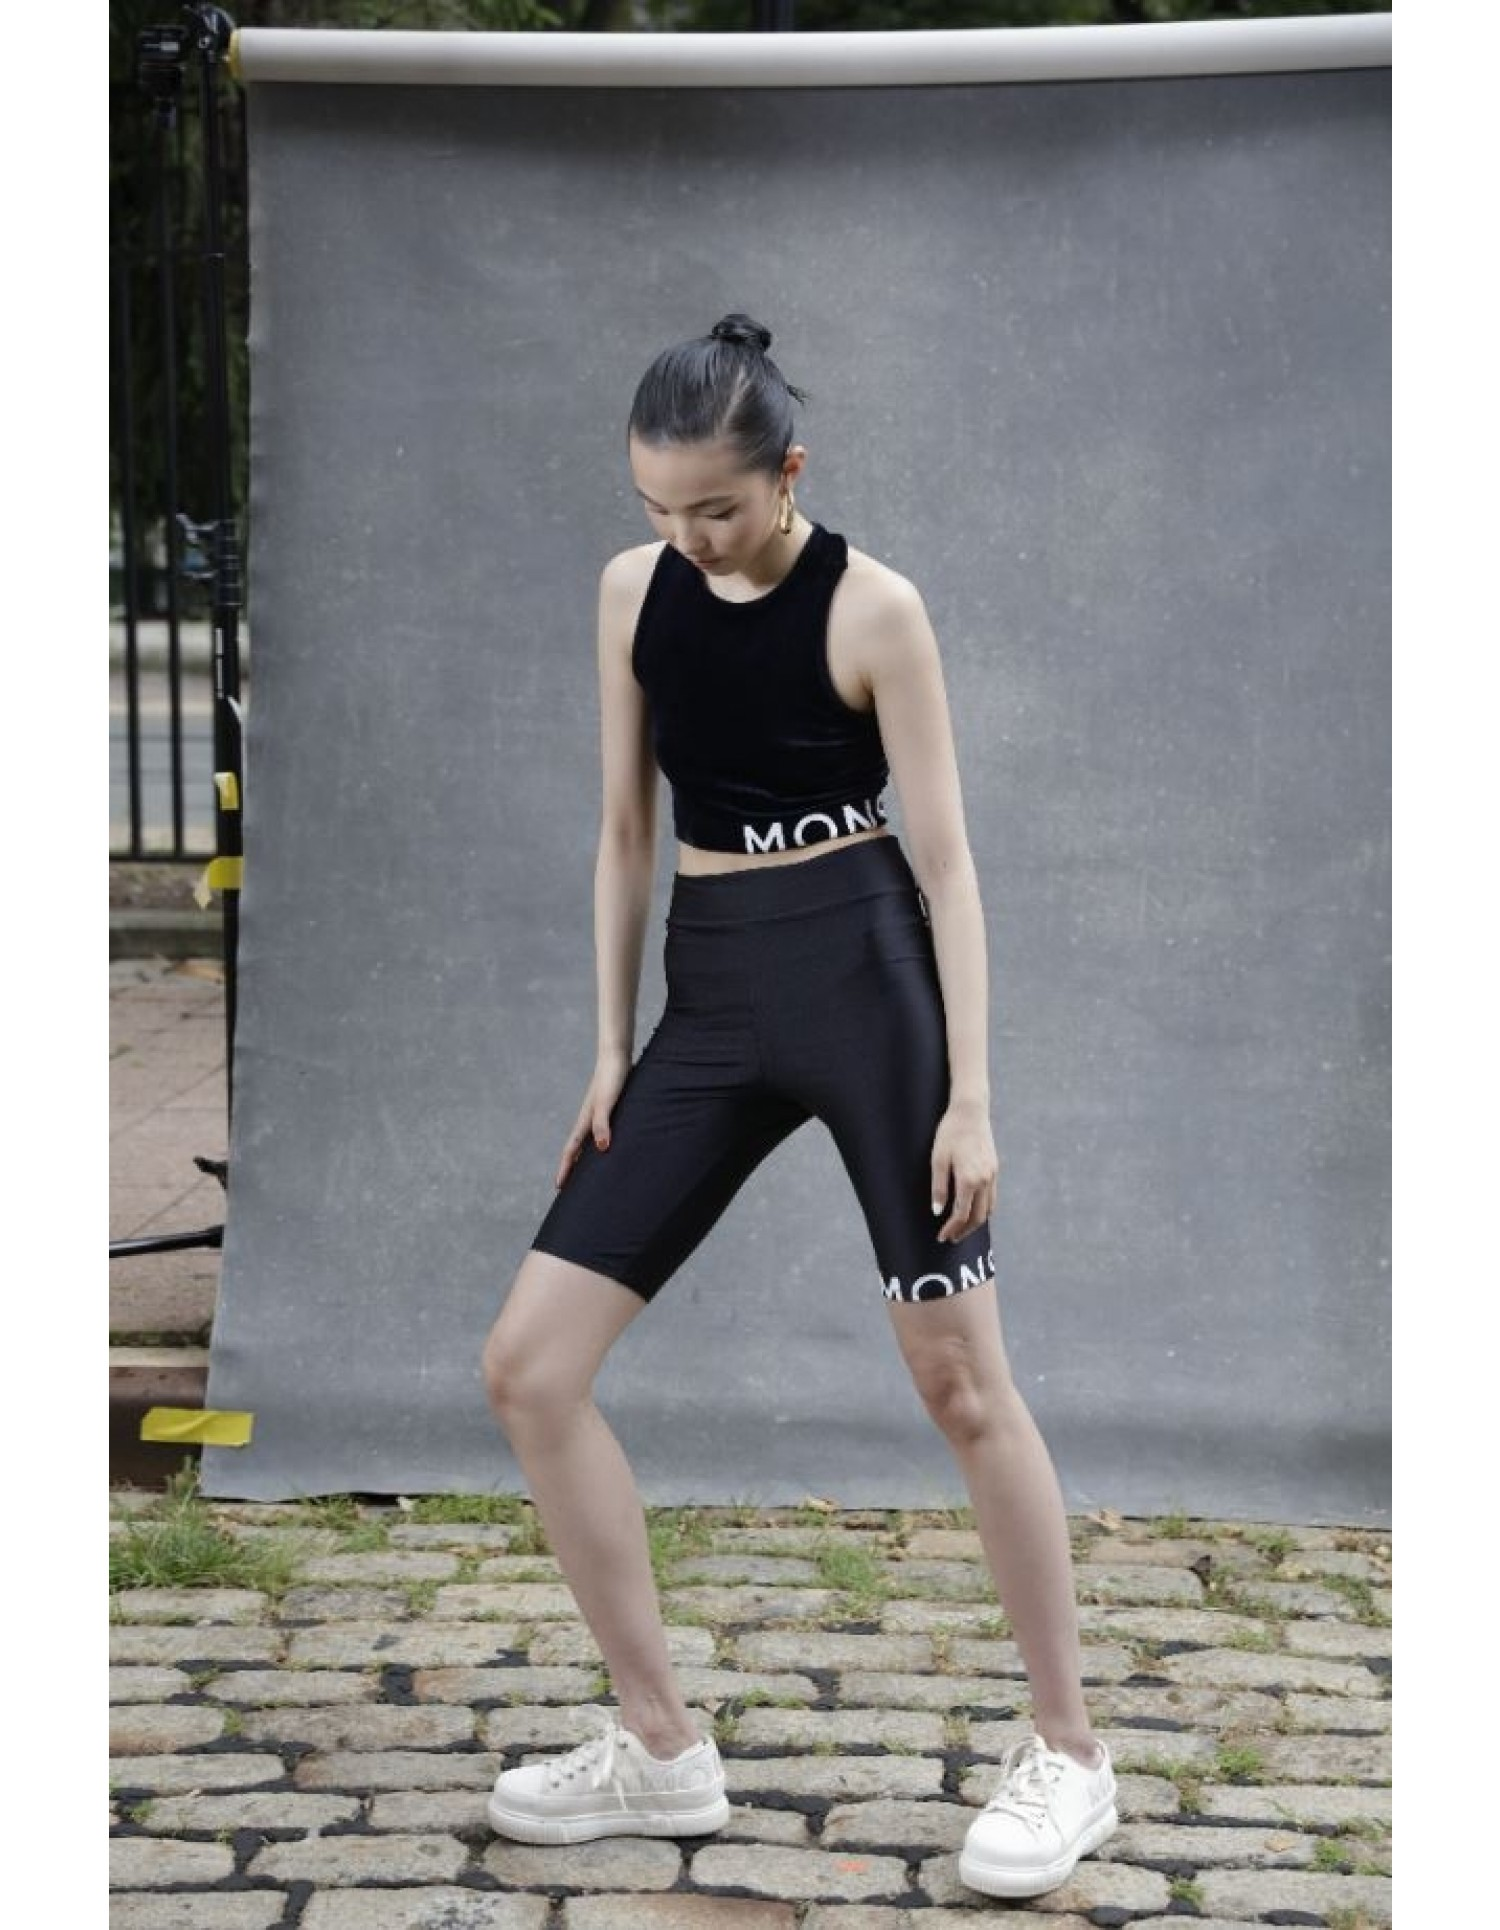 MONSE Bike Shorts in Black on Model Front View